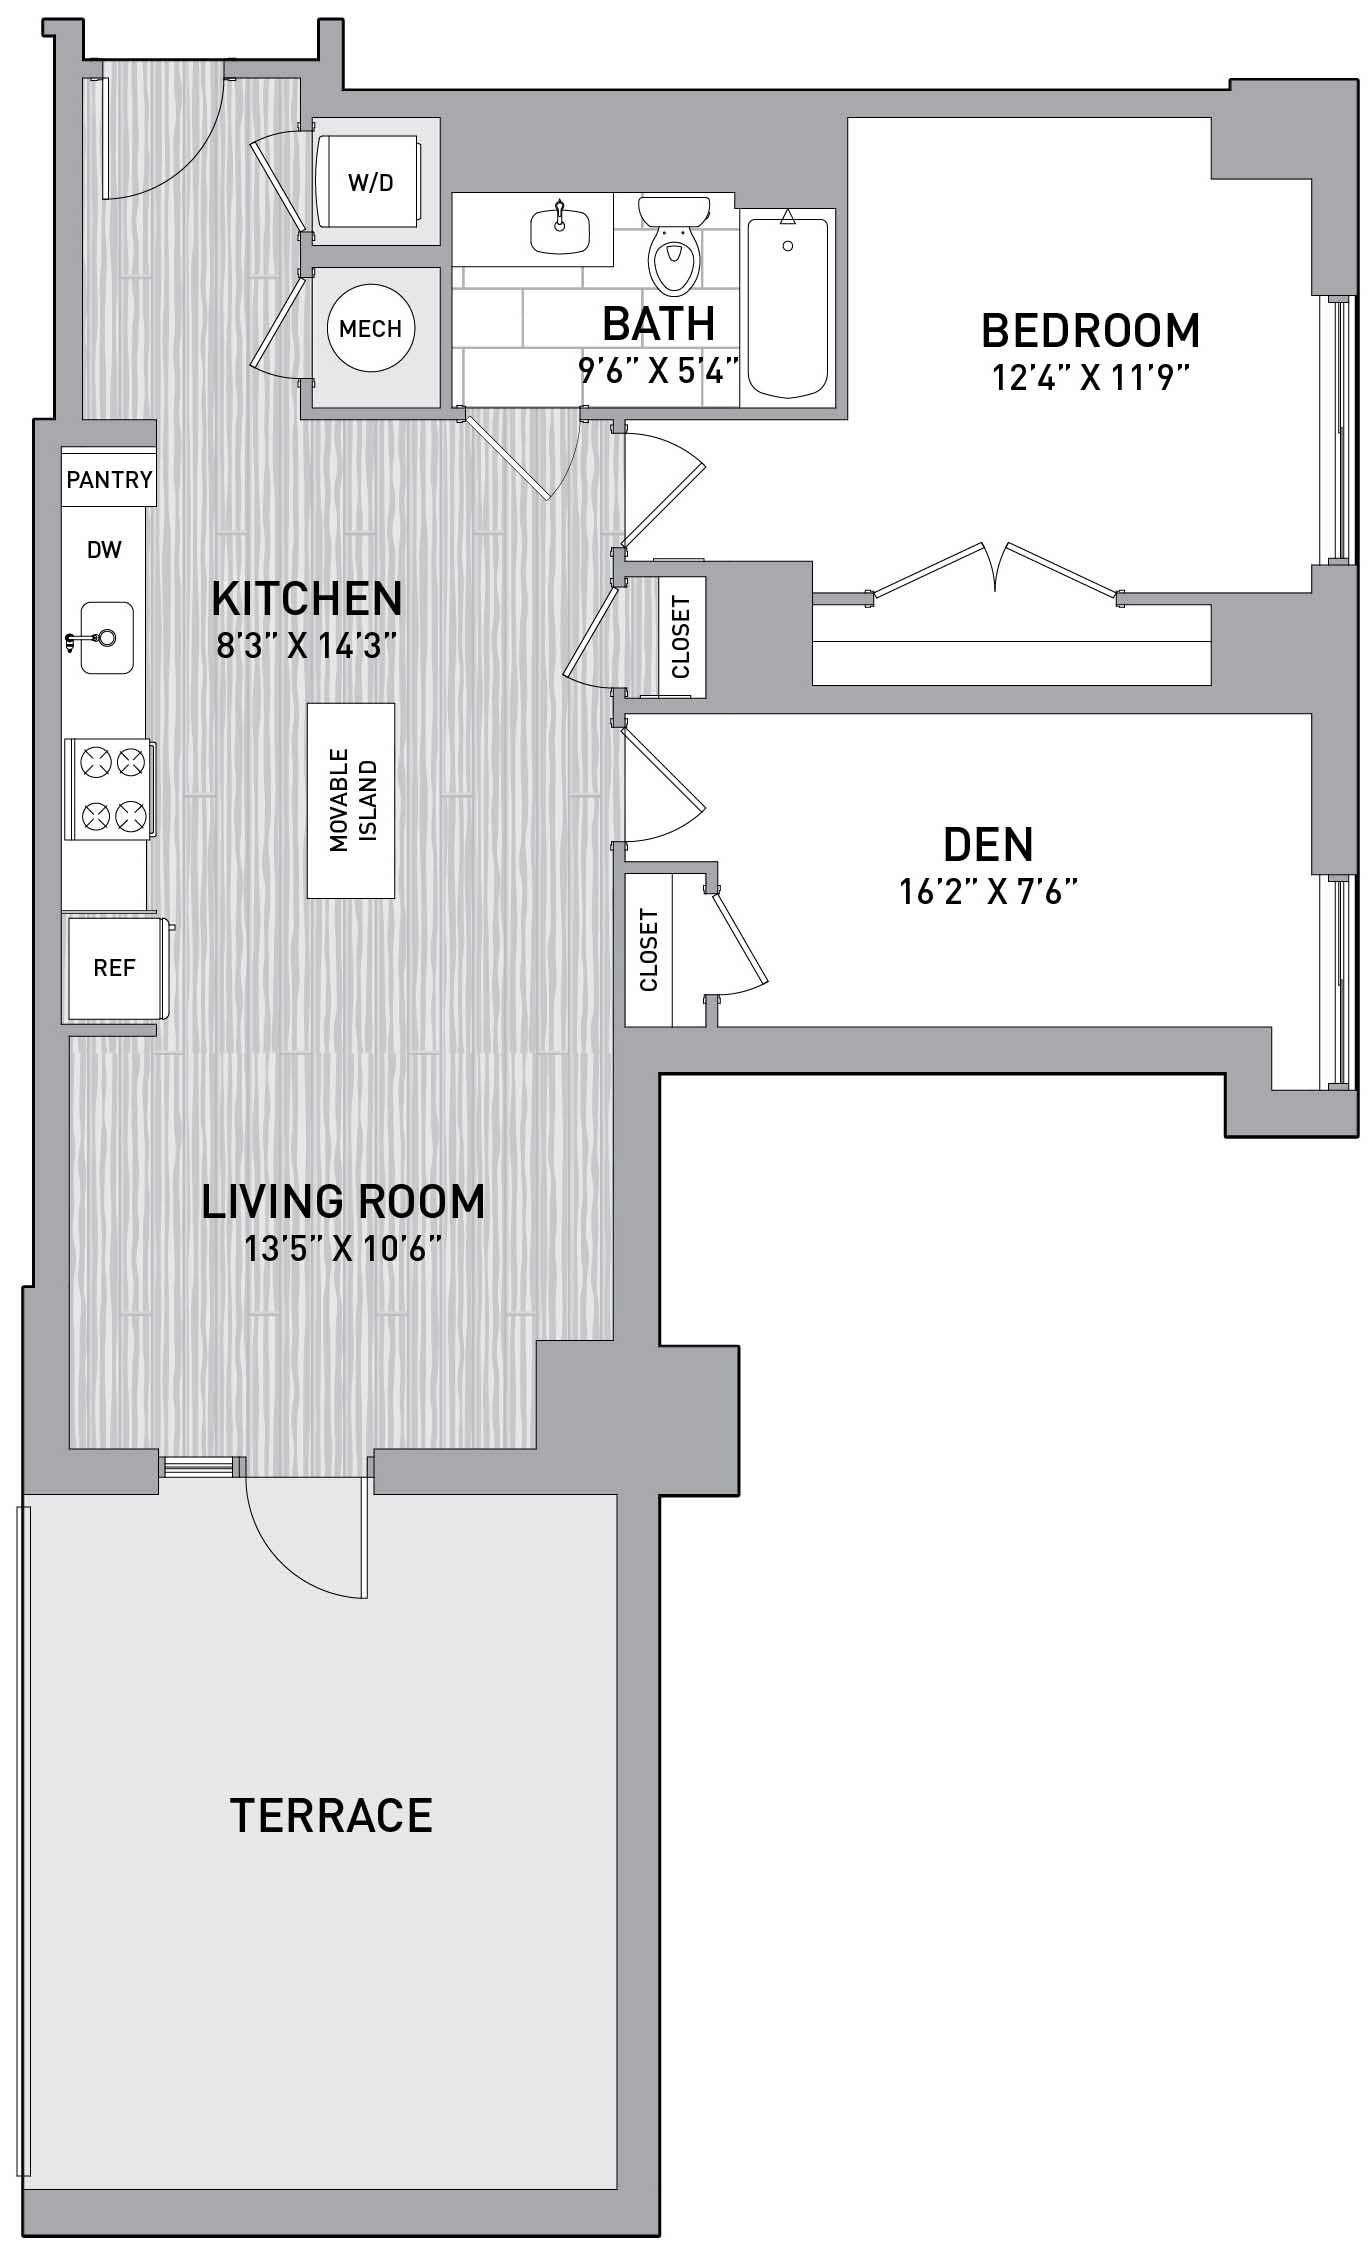 Floorplan Image of unit 151-0111